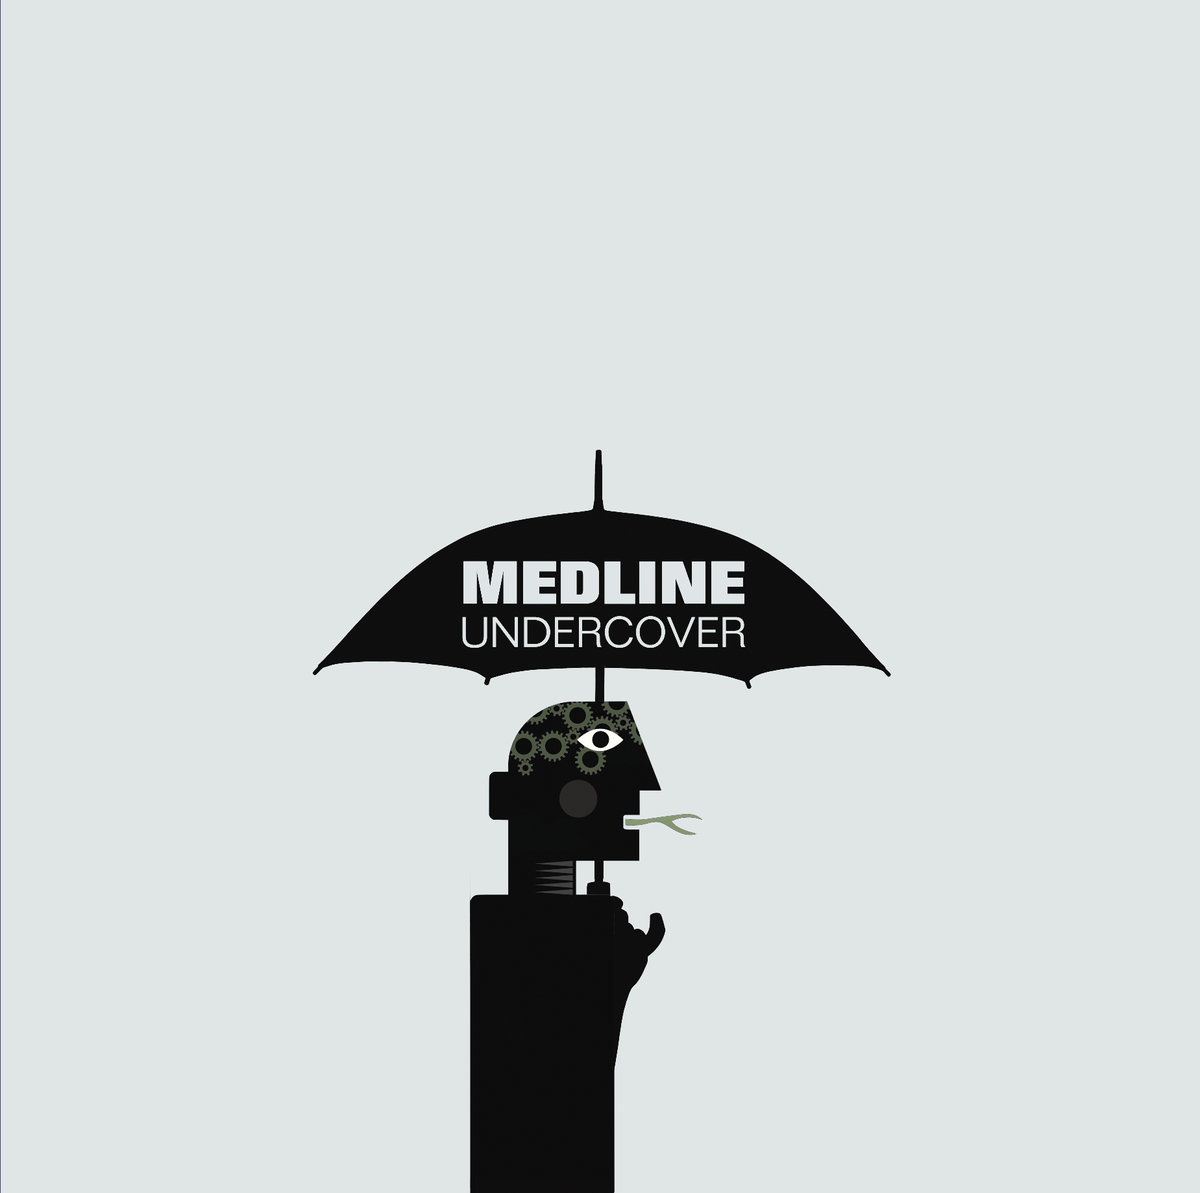 Medline-Undercover-Samples-Vinyl